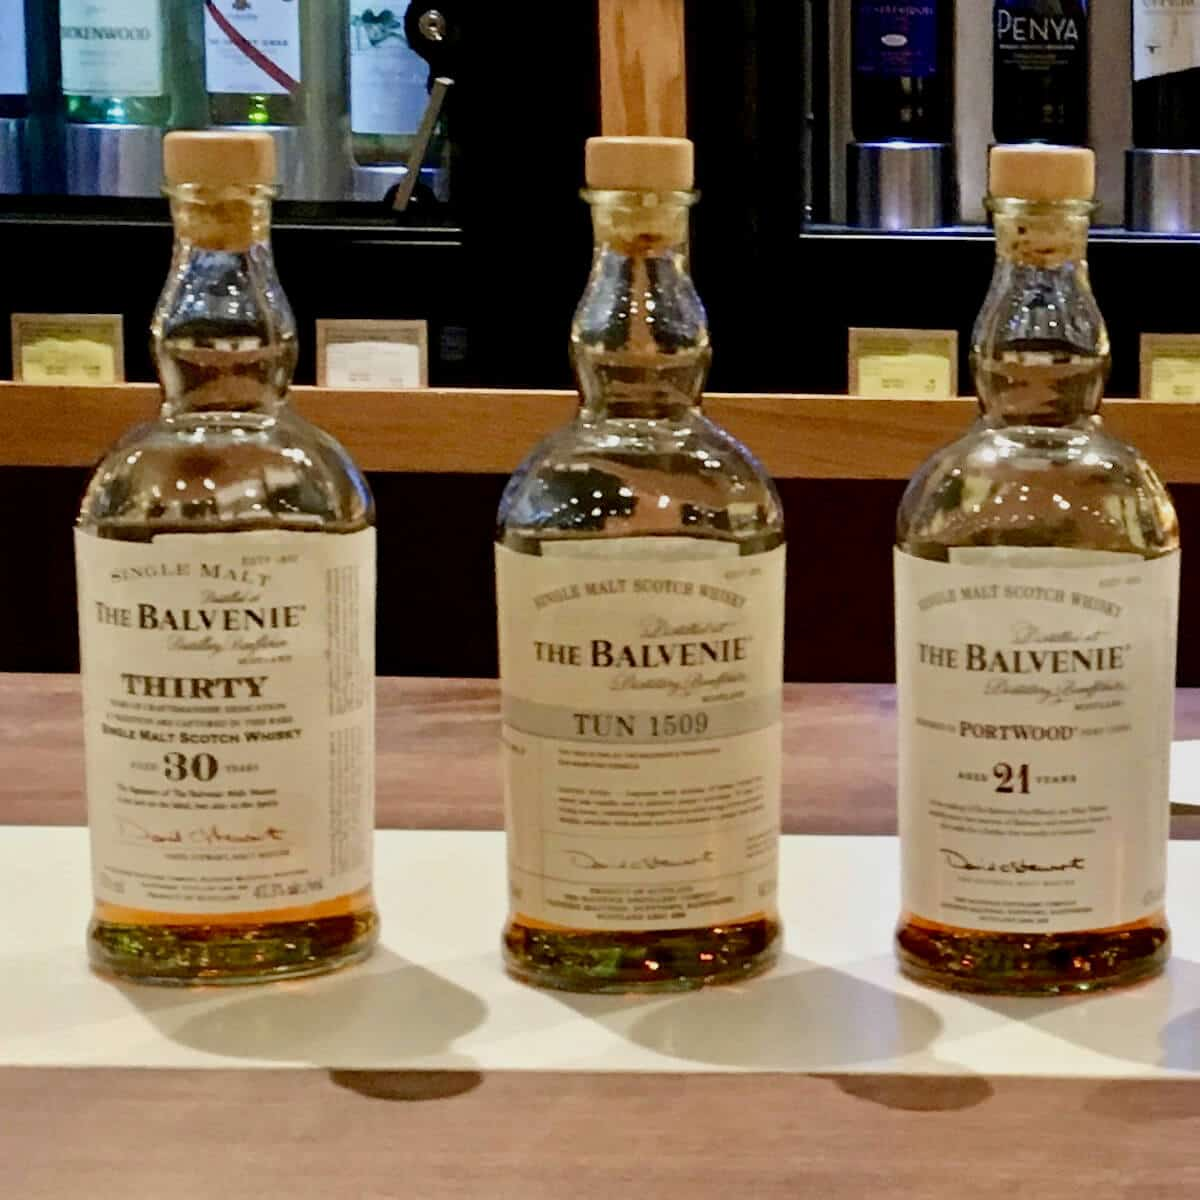 The Balvenie 21 year, Tun 1509, and 30 year lineup bottles on a counter.